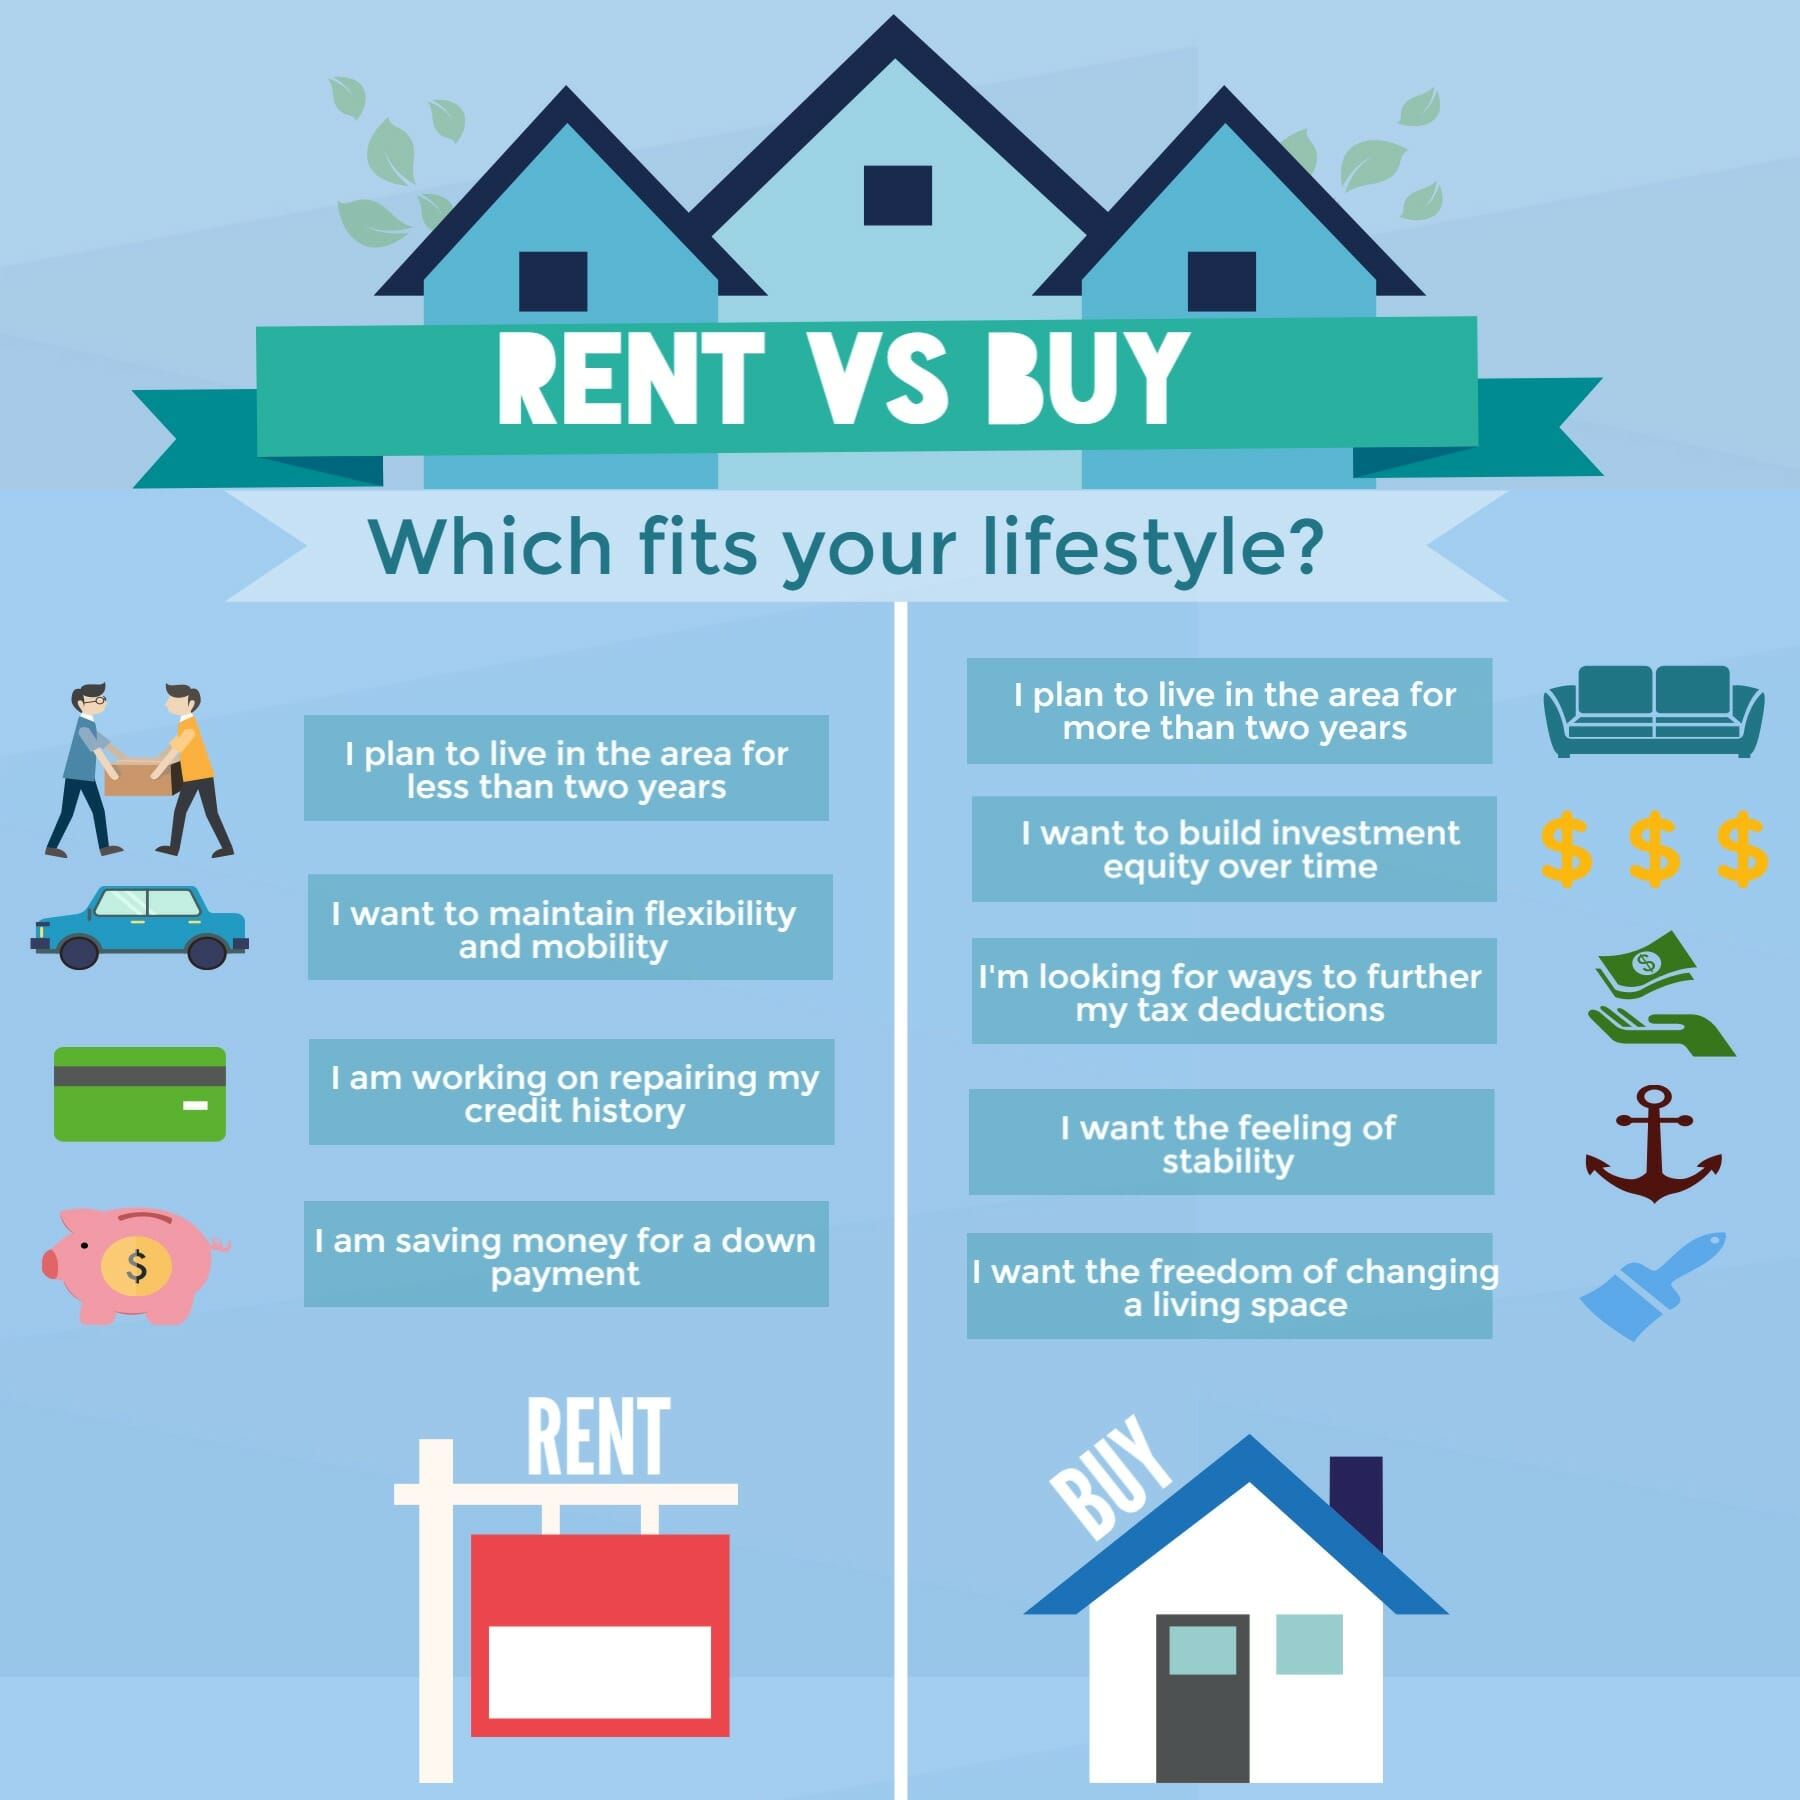 rent-vs-buy-lifestyle